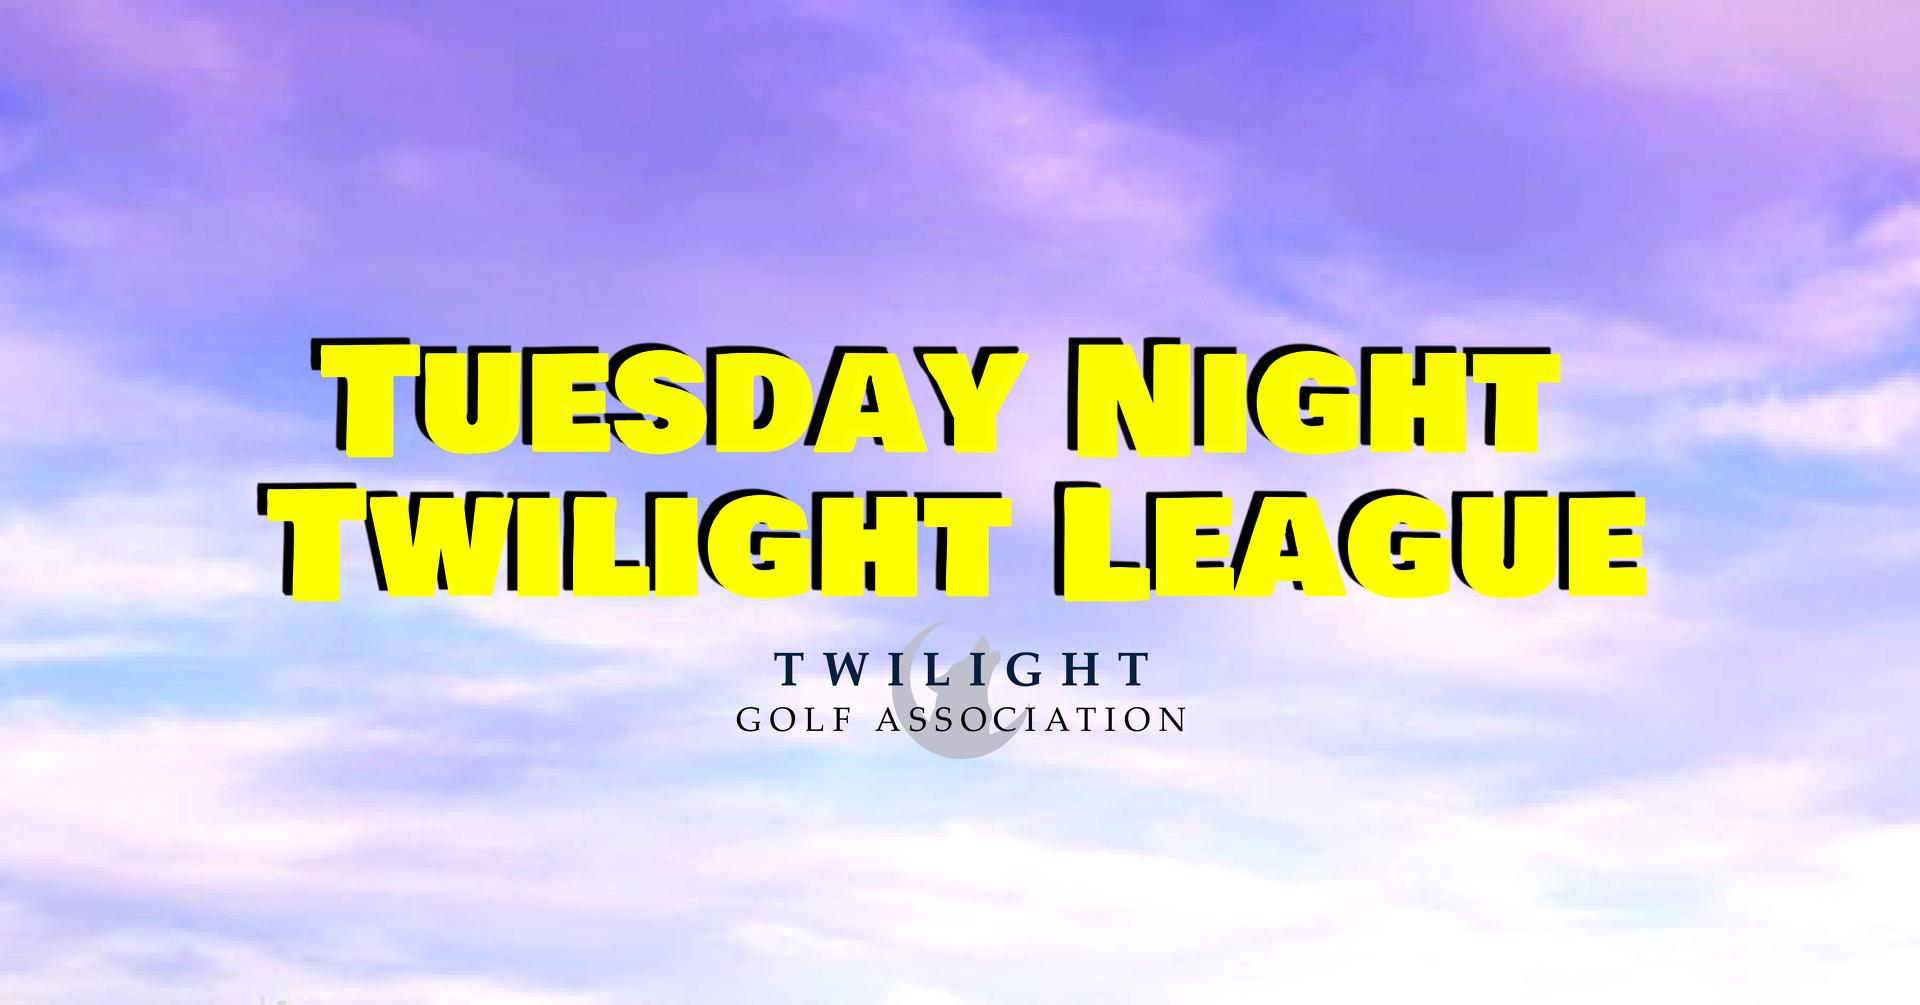 Tuesday Twilight League at Deerfield Golf Club